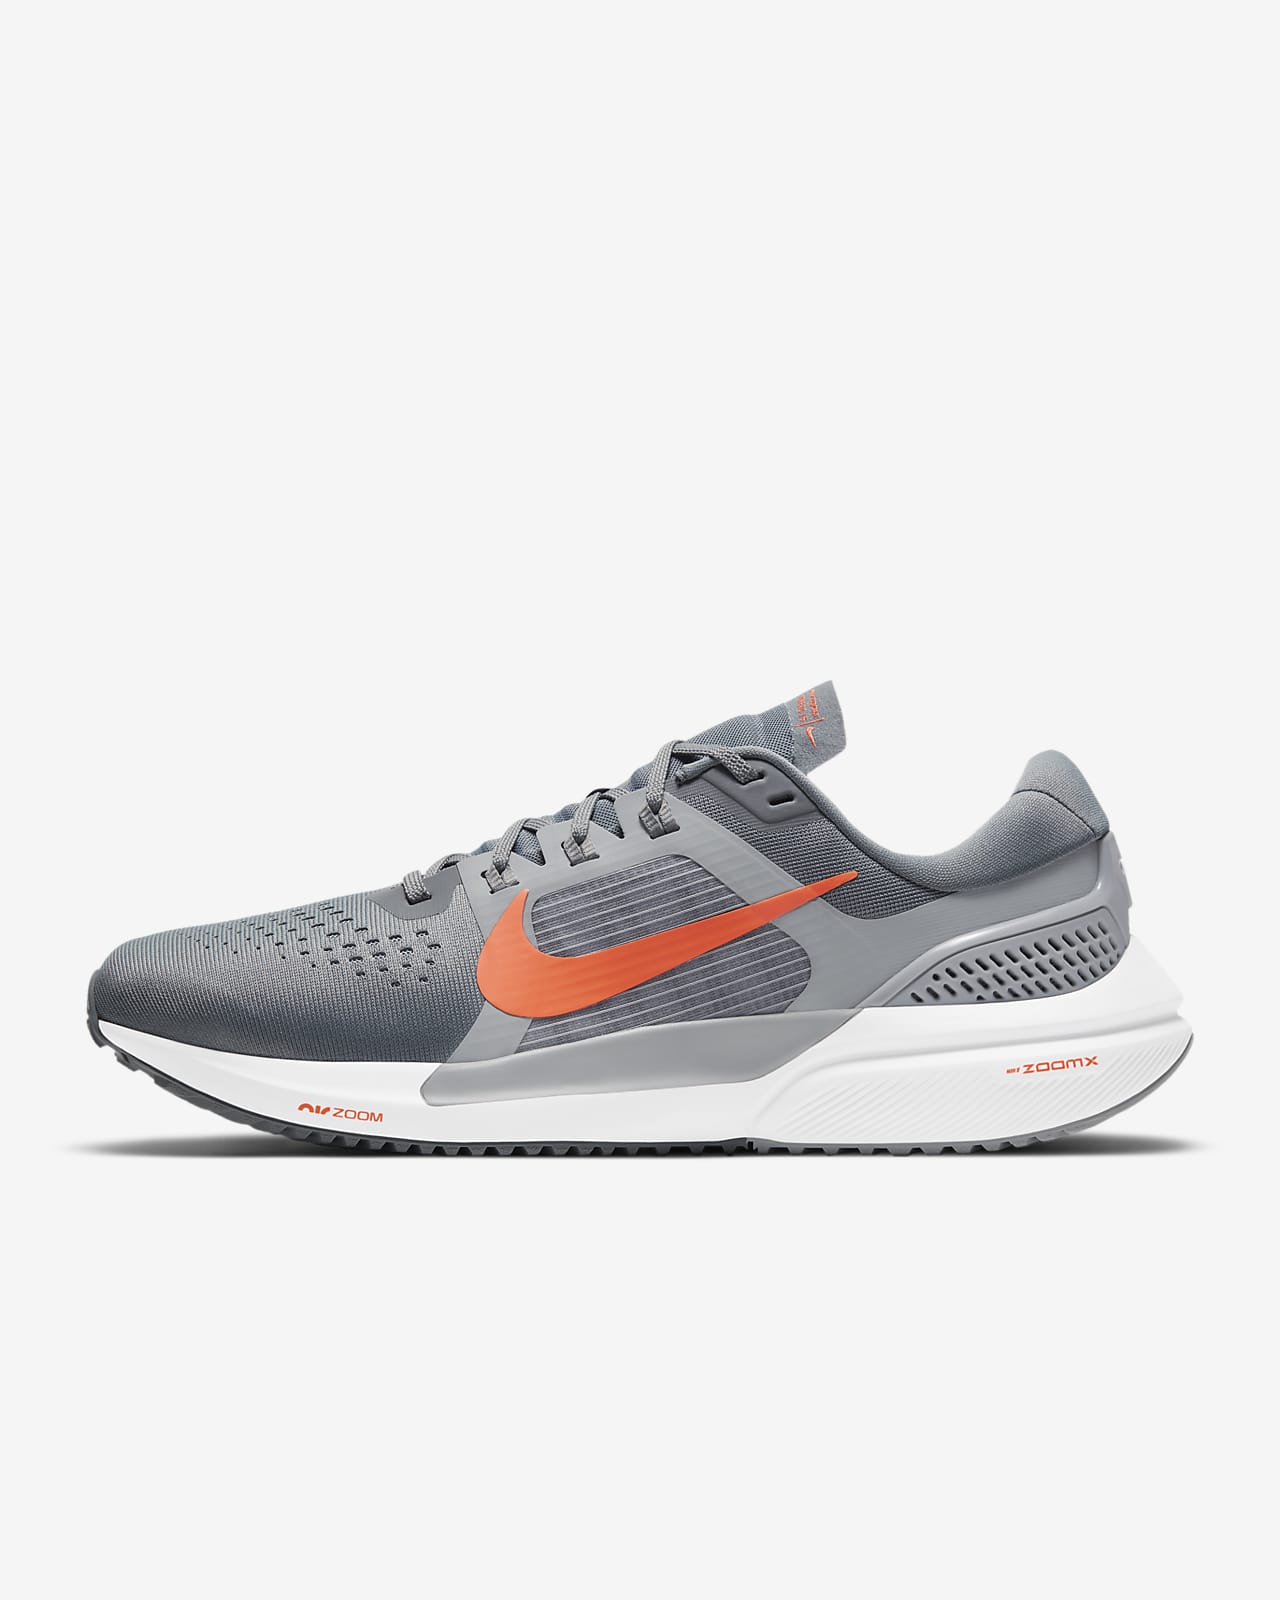 Chaussure de running Nike Air Zoom Vomero 15 pour Homme